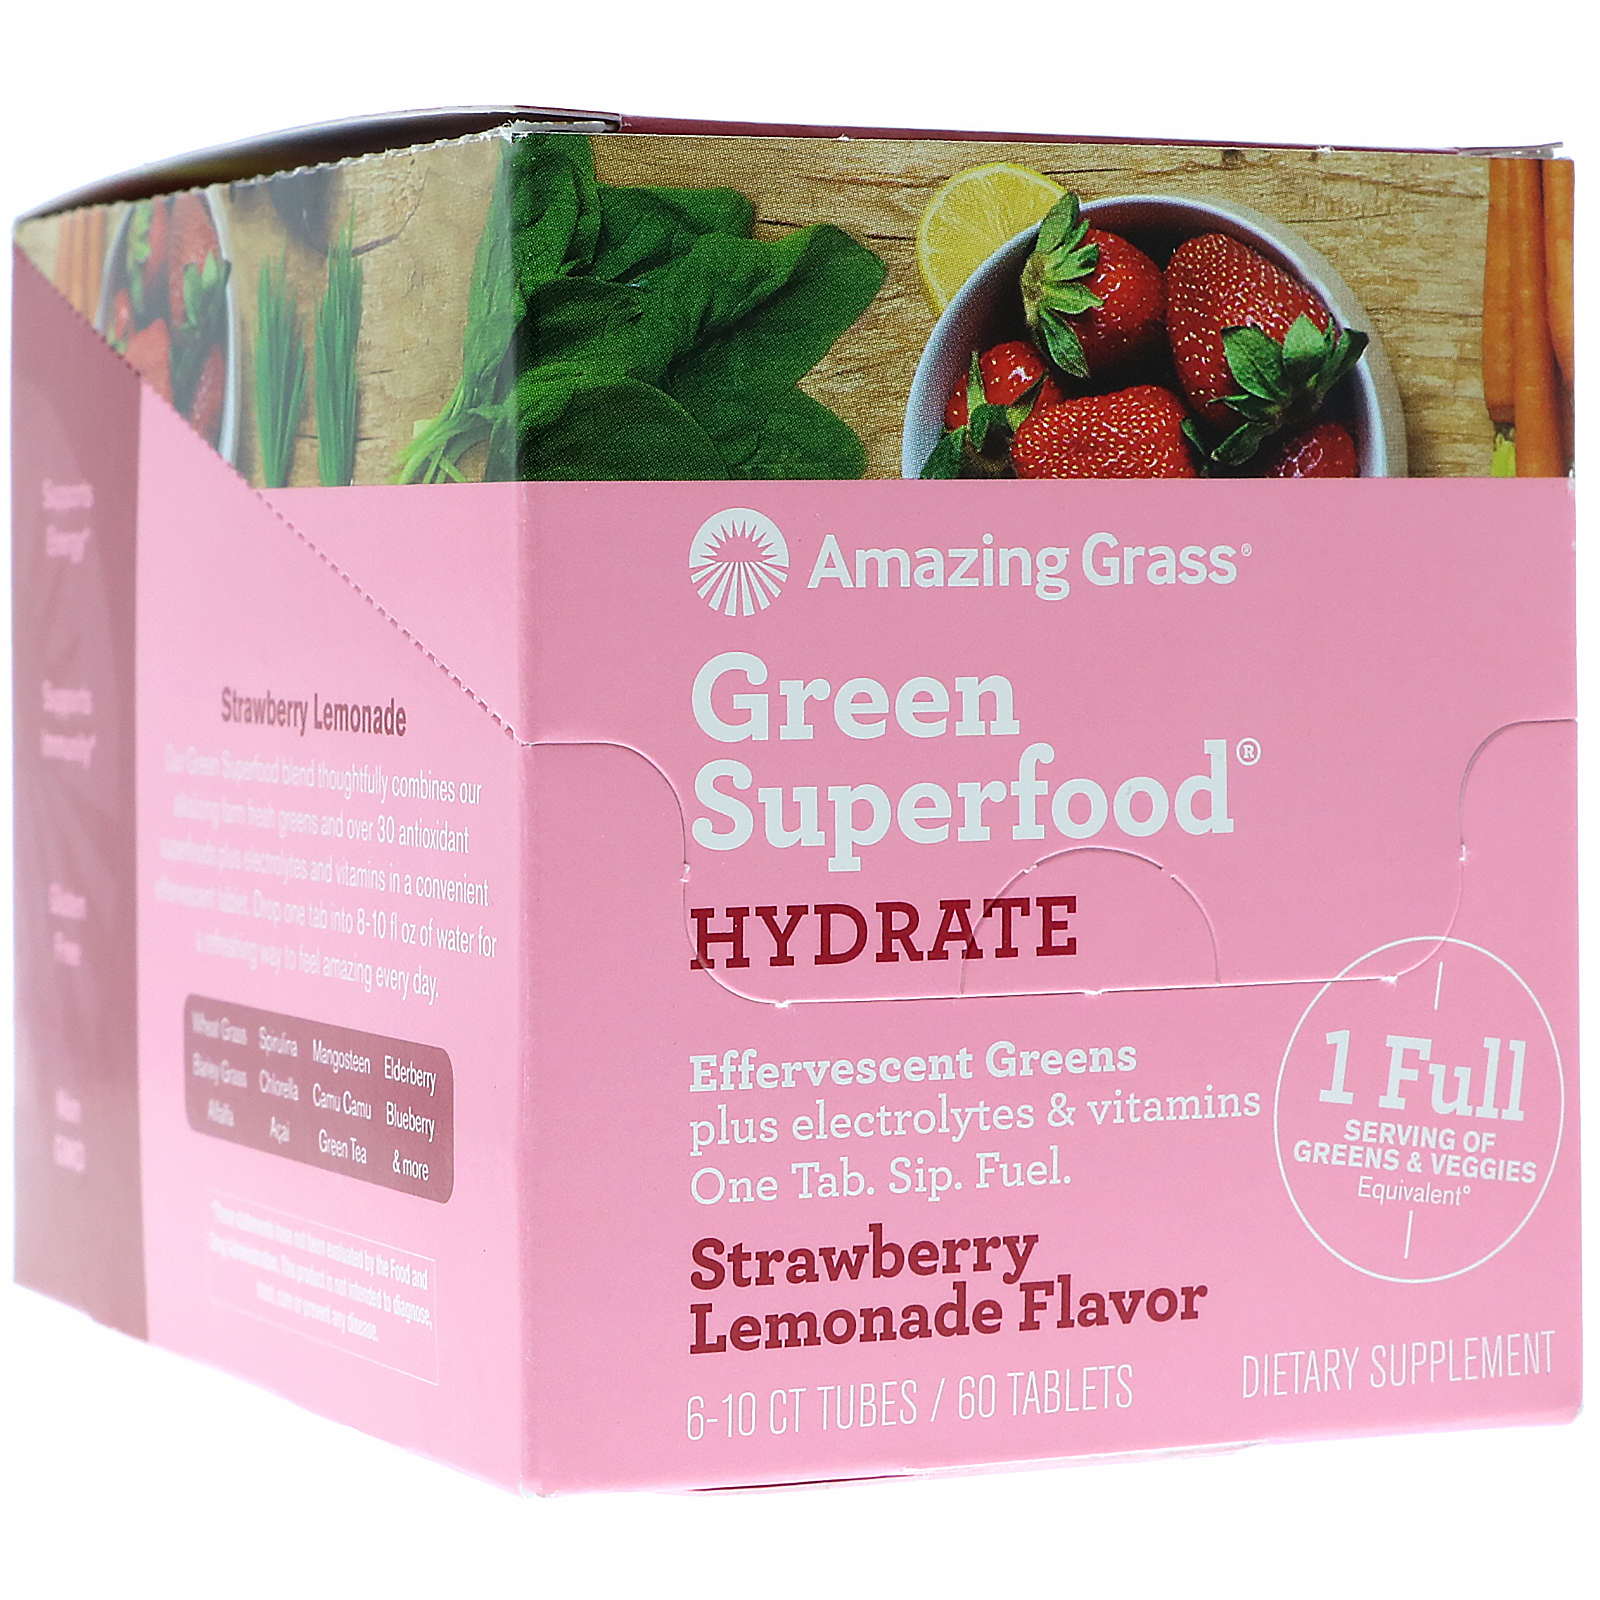 Amazing Grass Green Superfood Effervescent Greens Hydrate Supergreen Food 150 Tablets Sgf Strawberry Lemonade Flavor 6 Tubes